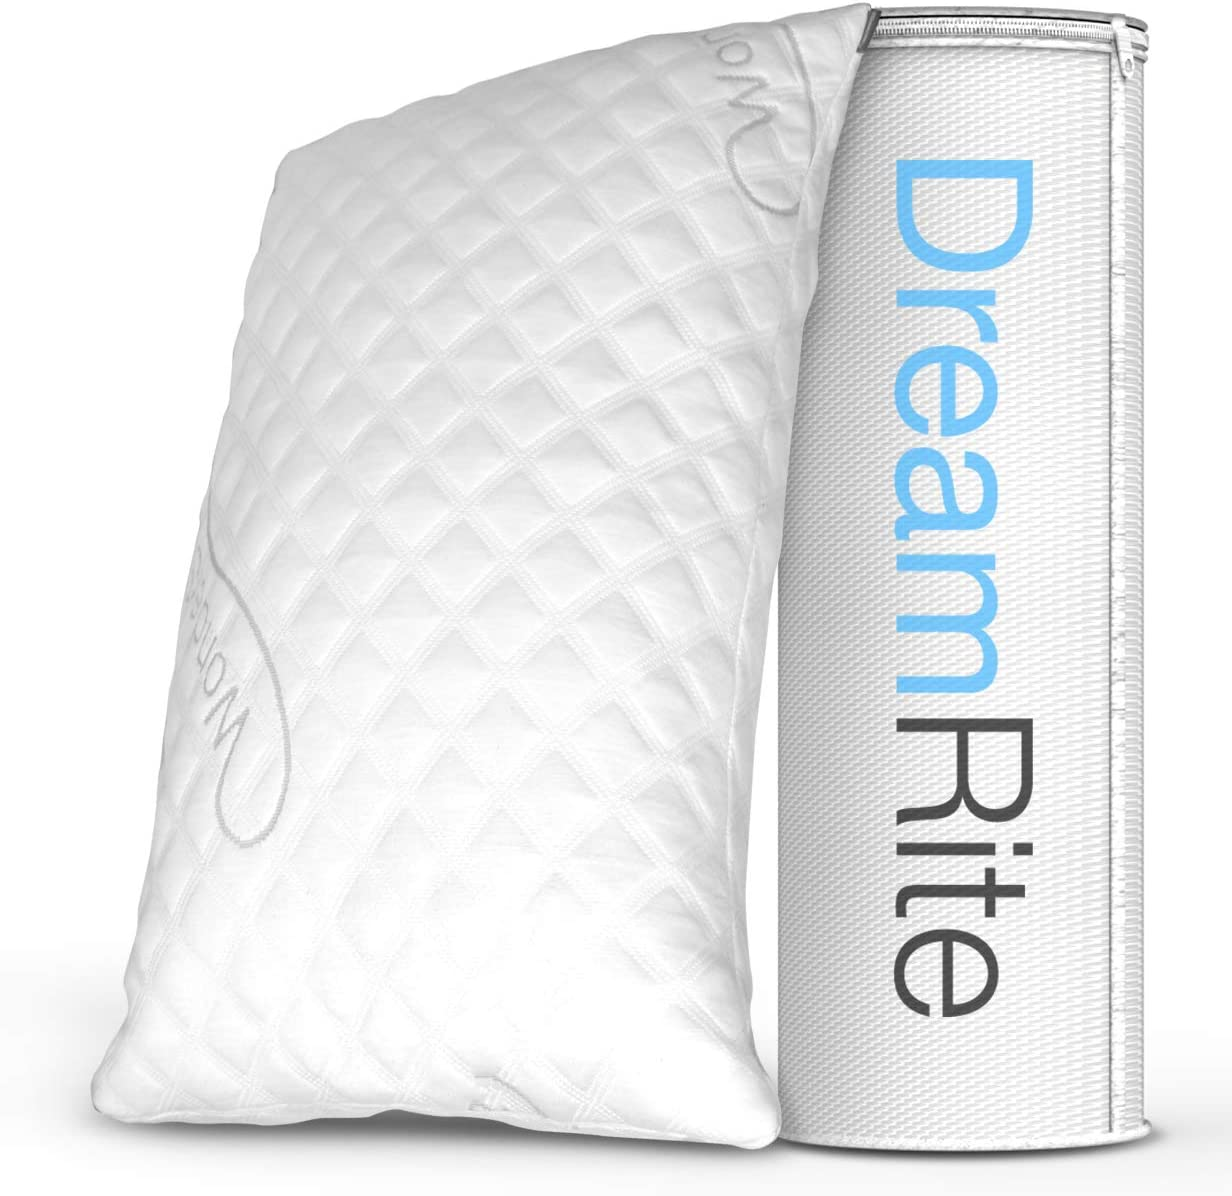 Dream Rite Shredded Hypoallergenic Memory Foam Pillow